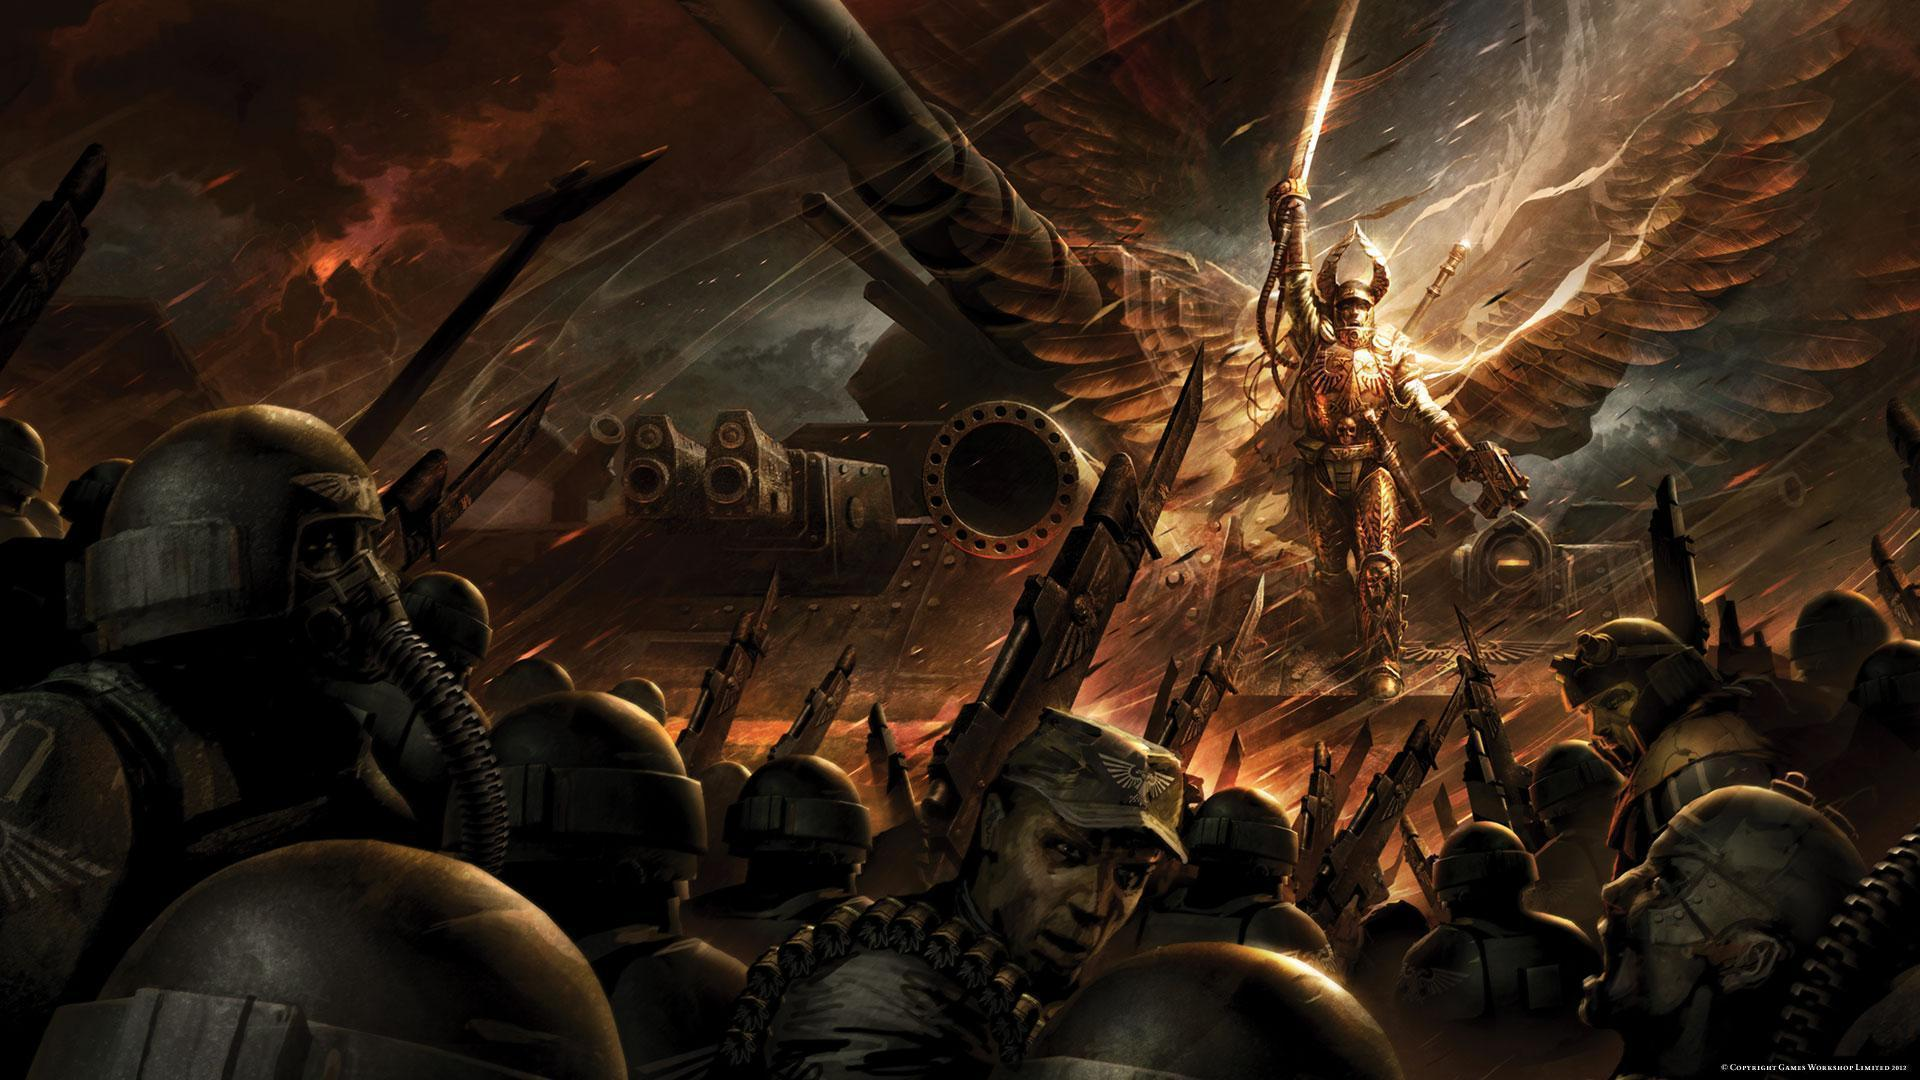 Warhammer Total War 2 Wallpaper 2560 X 1440 Dark Elves: Warhammer 40k Wallpapers